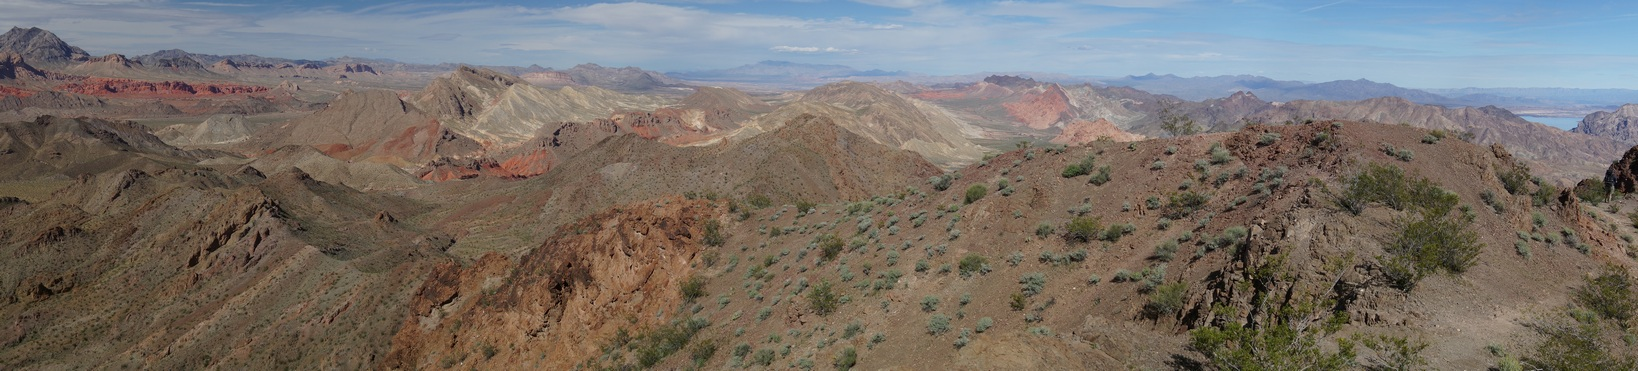 Pinto Valley Wilderness Viewed From Hamblin Mountain